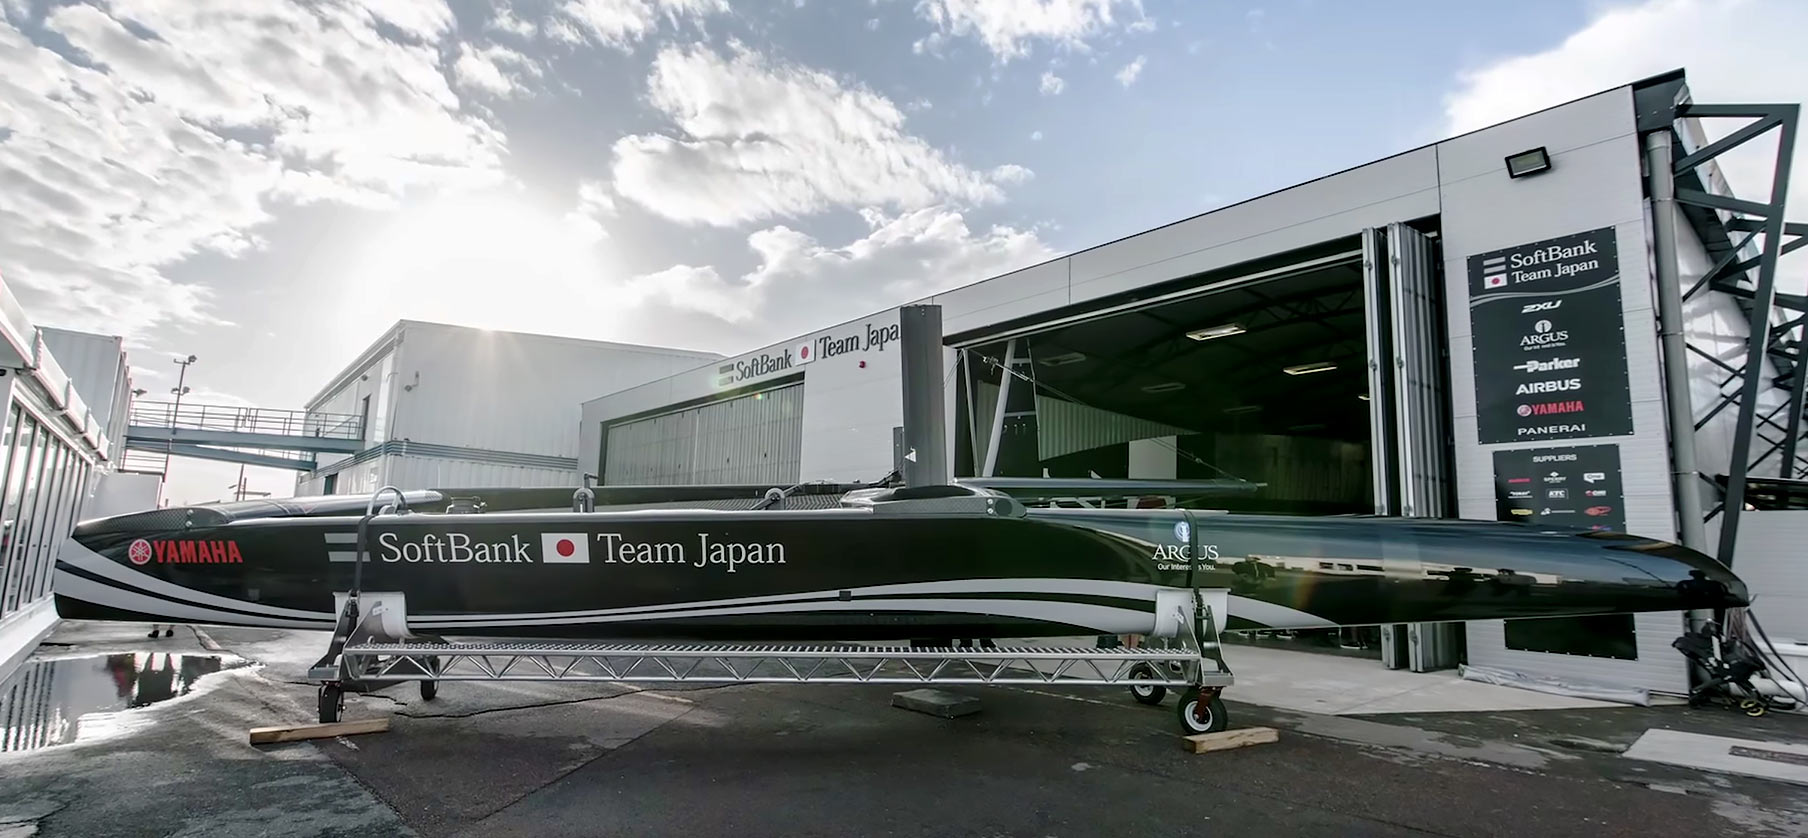 "SoftBank Team Japan launched their America's Cup Class boat in a traditional Japanese ceremony at the team's base in Bermuda. The boat was christened ""Hikari"" which means 'flash of light' in Japanese. February 25, 2017."